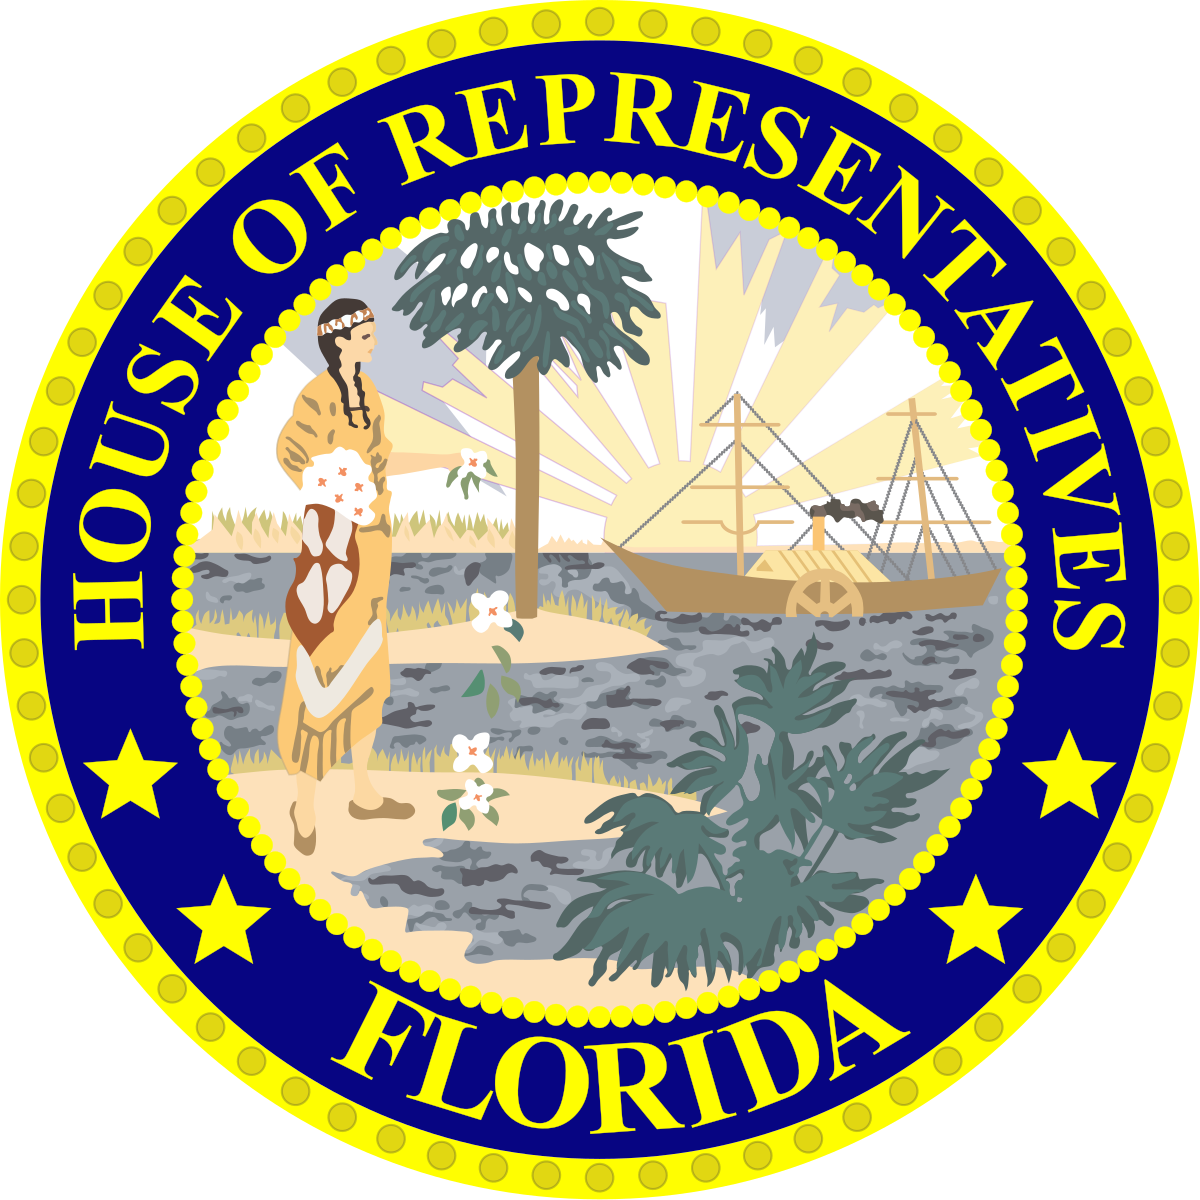 Courthouse clipart whitehouse. Florida house of representatives